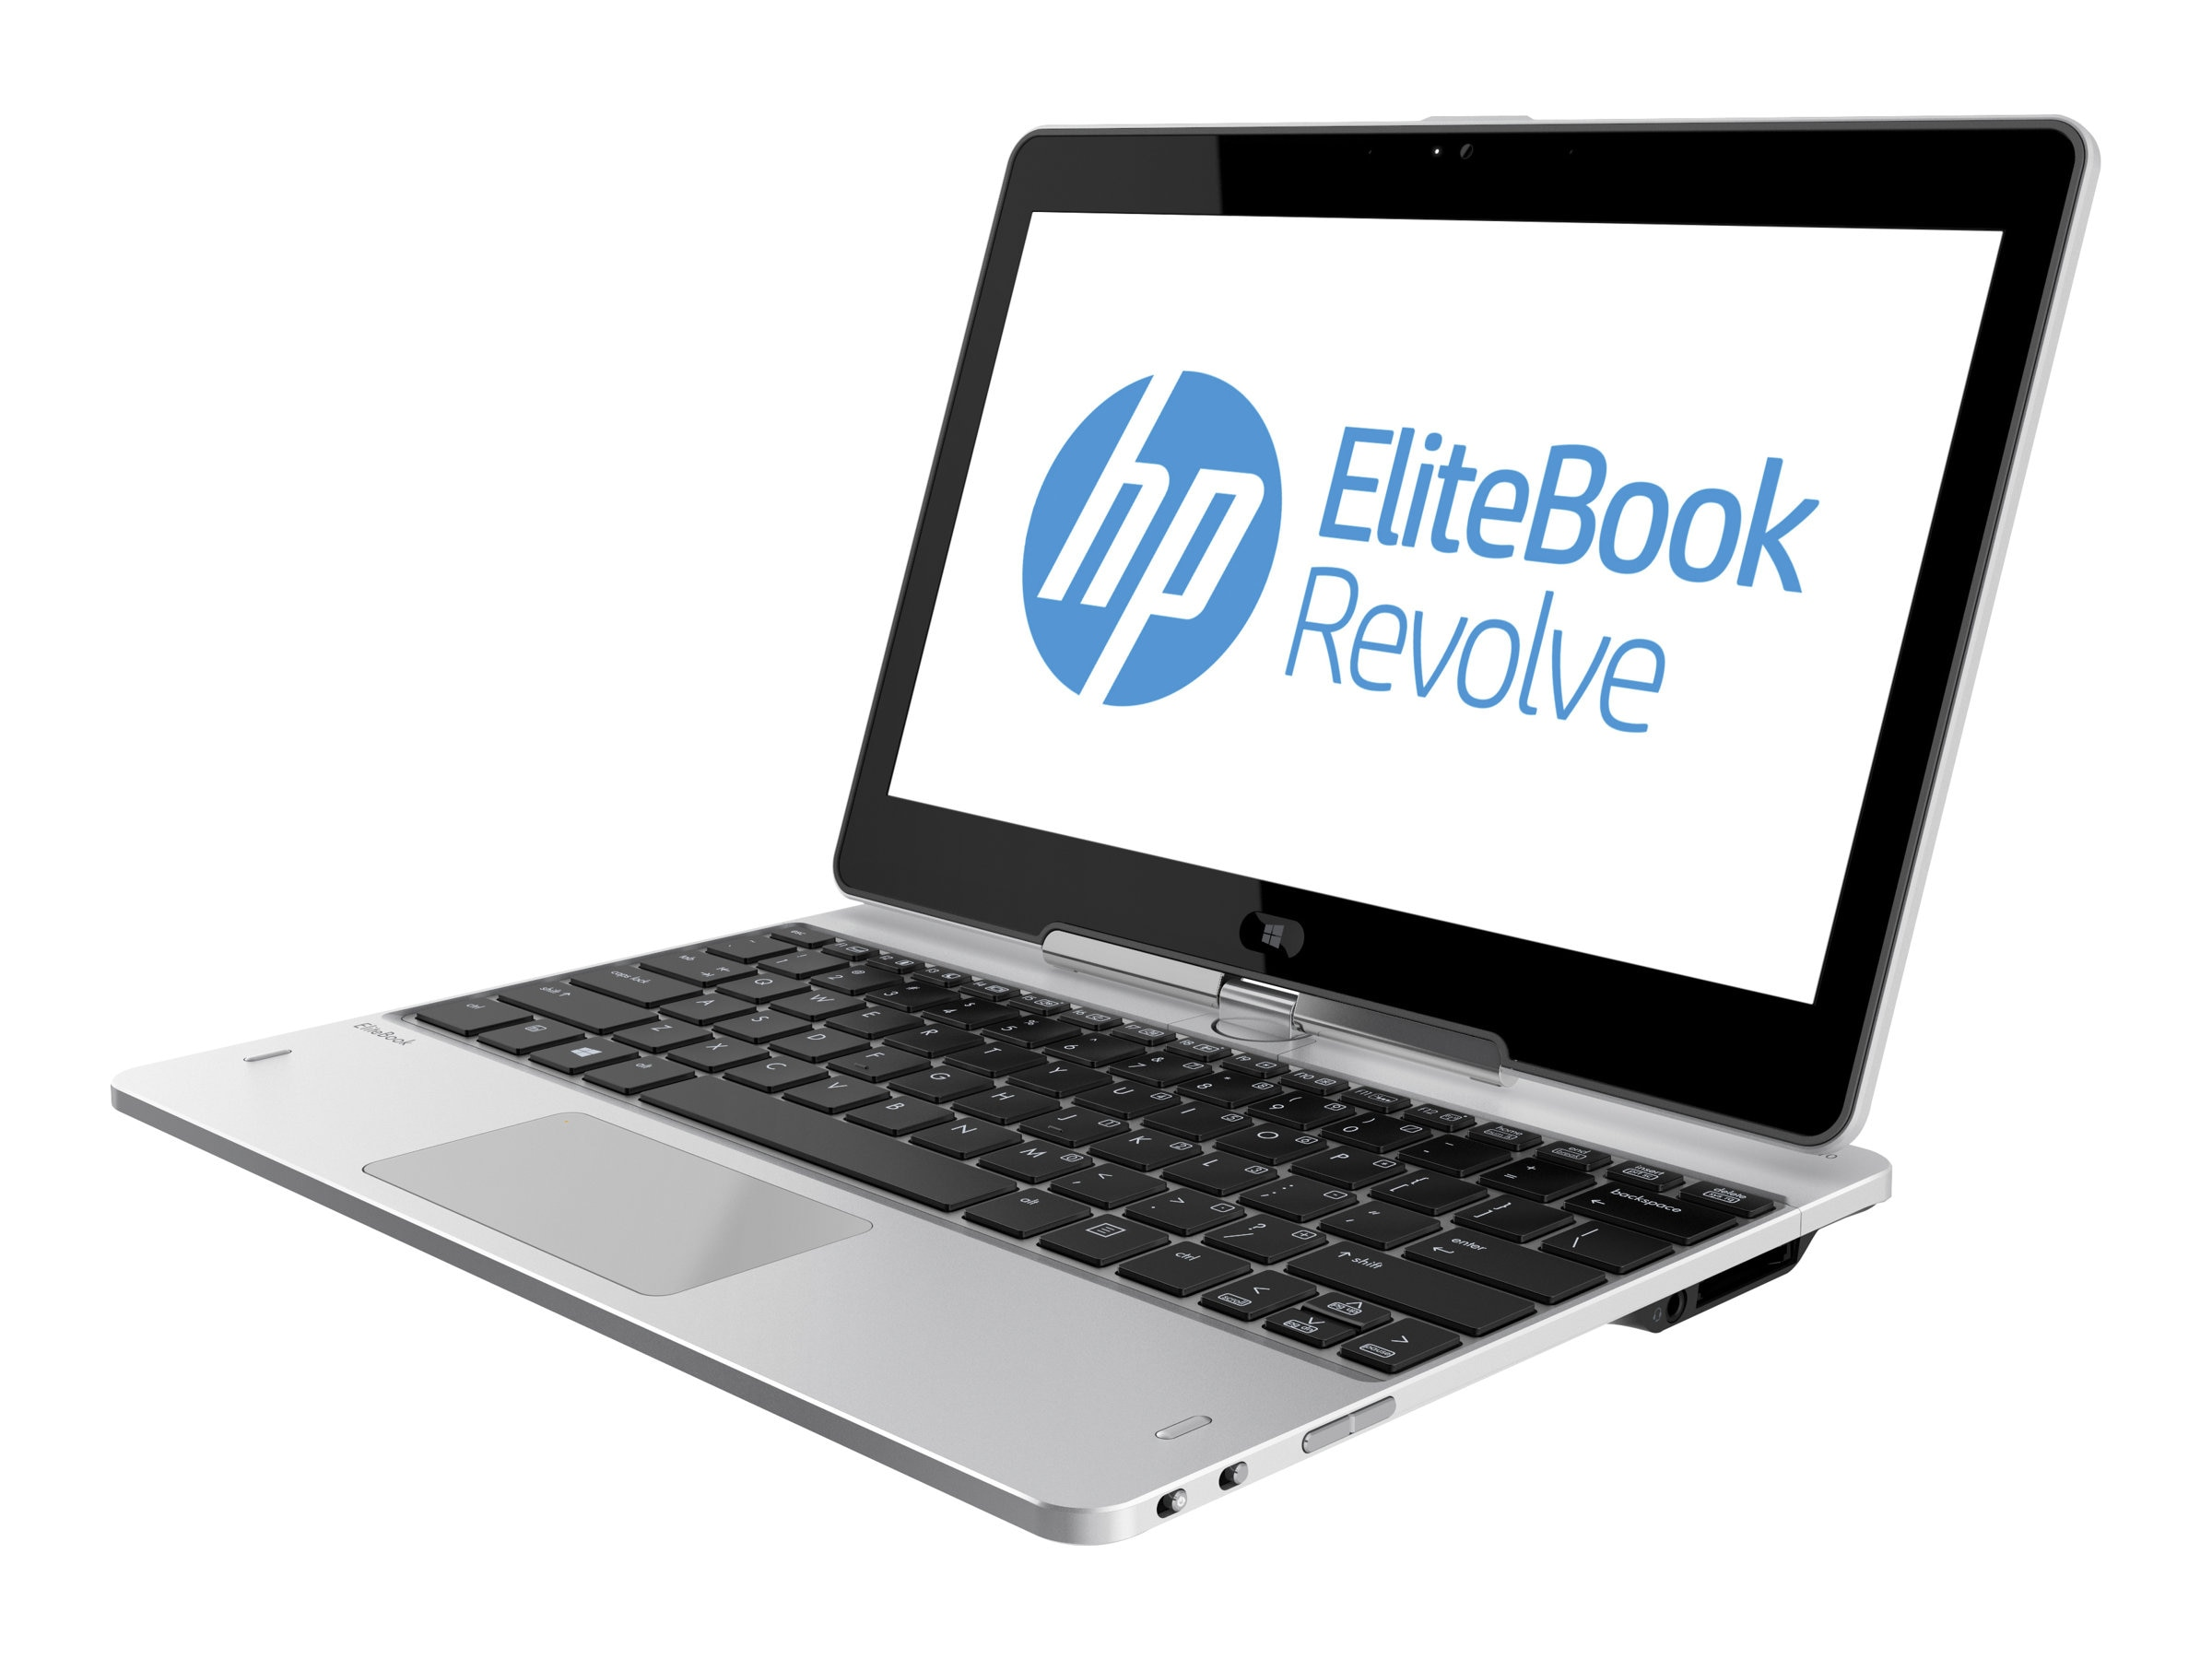 HP EliteBook Revolve 810 Core i5-3437U 1.9GHz 4GB 256GB SSD abgn NIC BT 56k WC 11.6 HD MT W7P64, D7P56AW#ABA, 15451921, Notebooks - Convertible